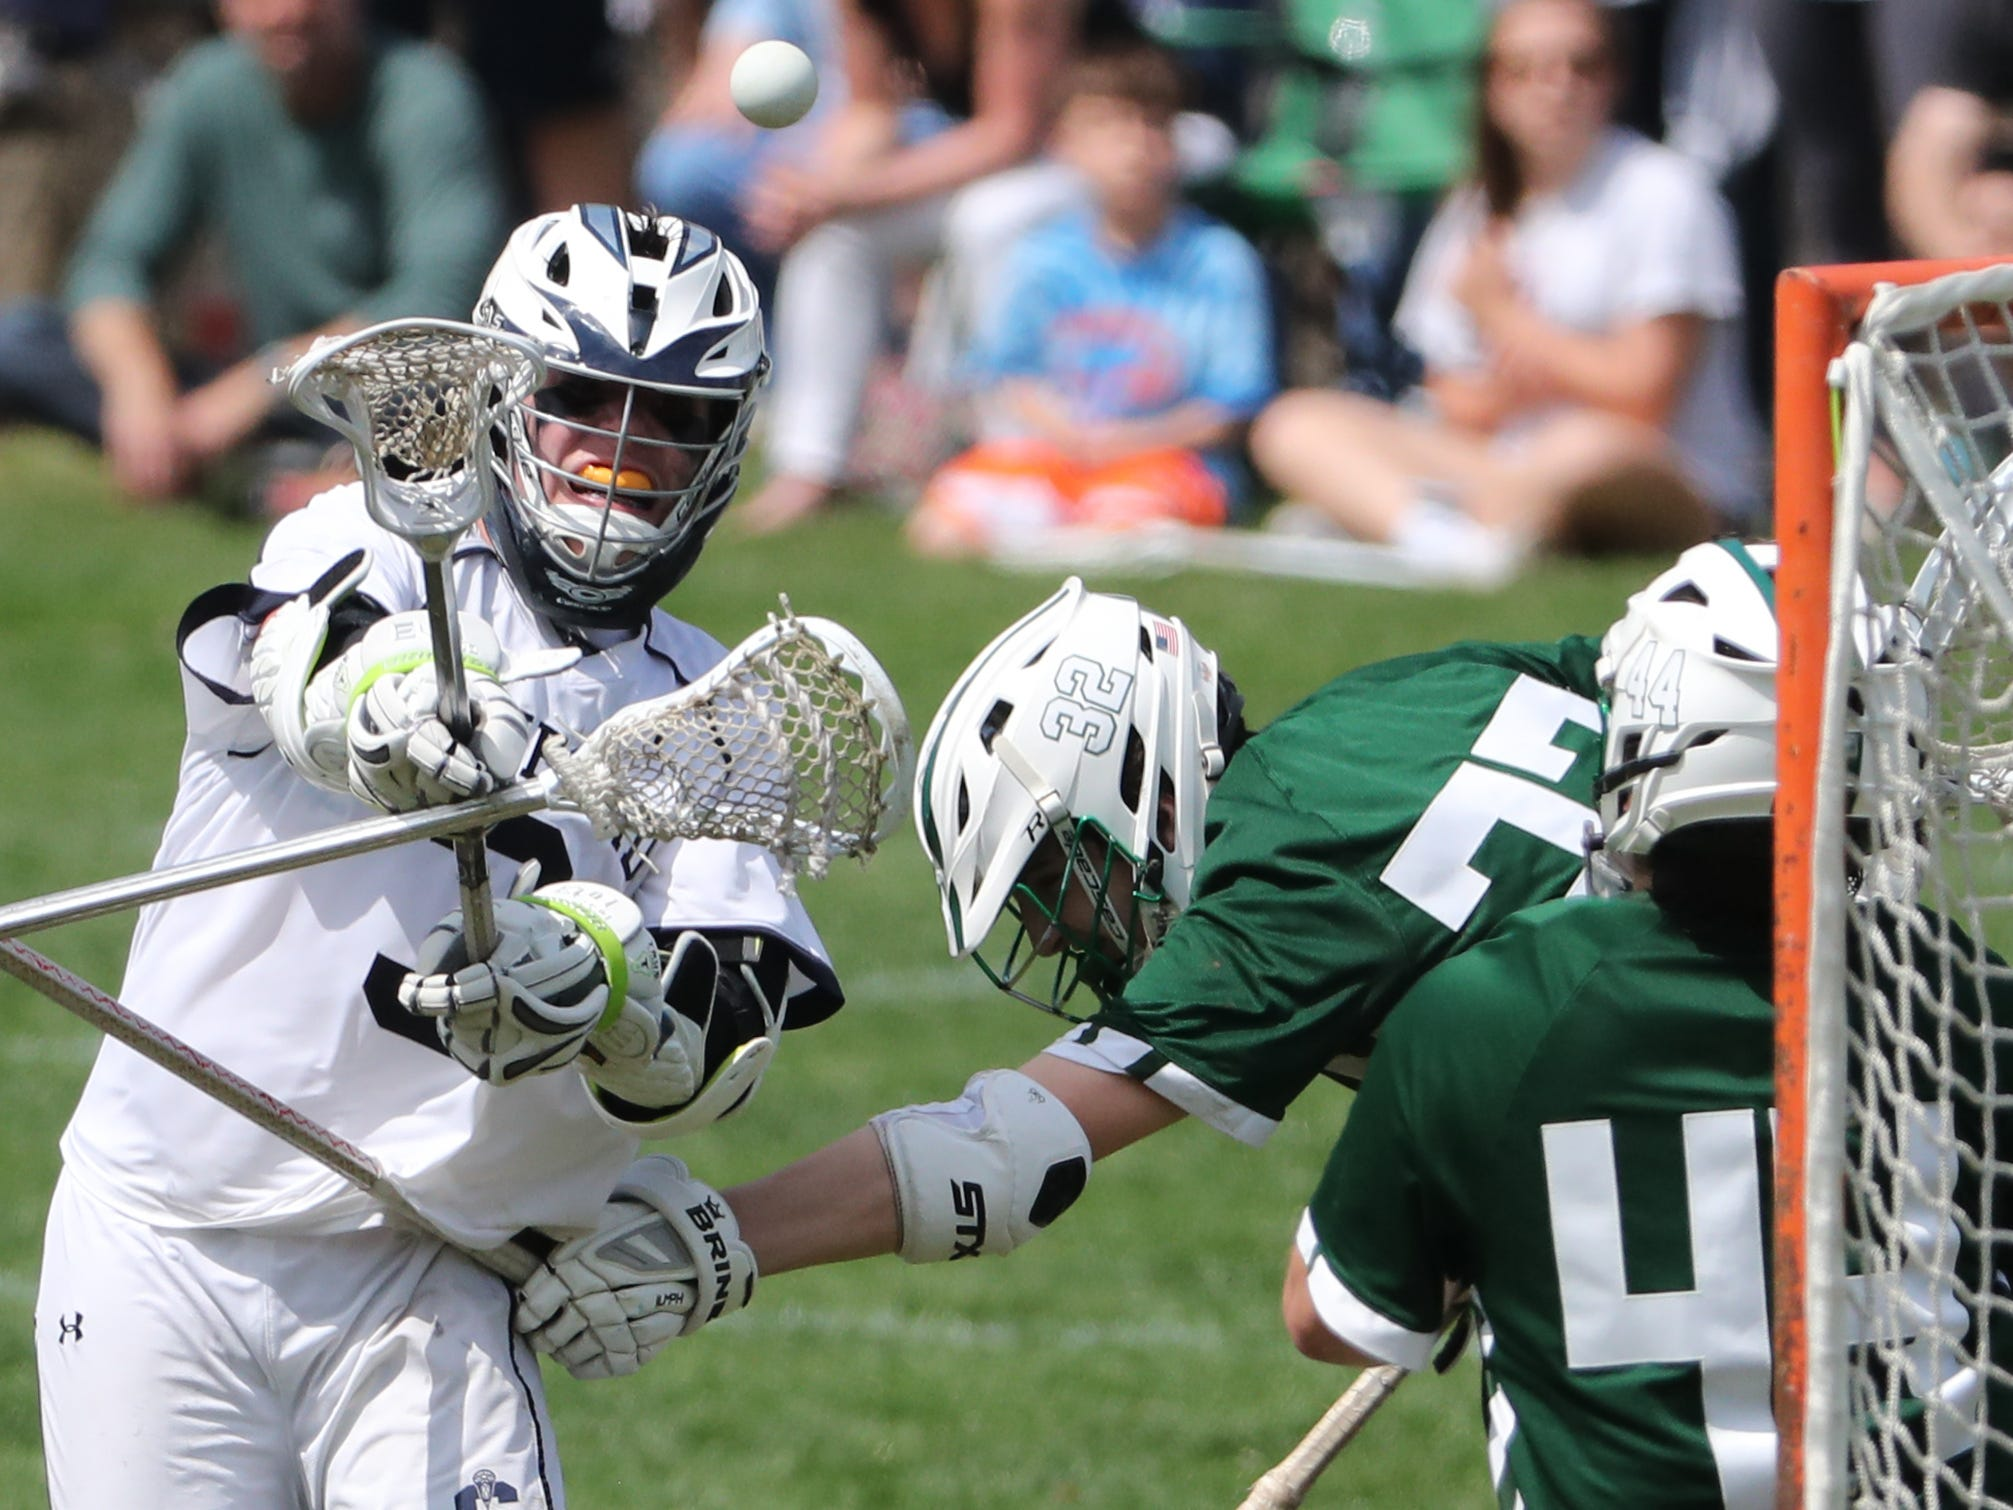 Sanford's Devon Lucky shoots and scores past Archmere's Connor Udovich and goalie Vaughn DiBattista for a late insurance goal and the final score of Sanford's 12-10 win Saturday.